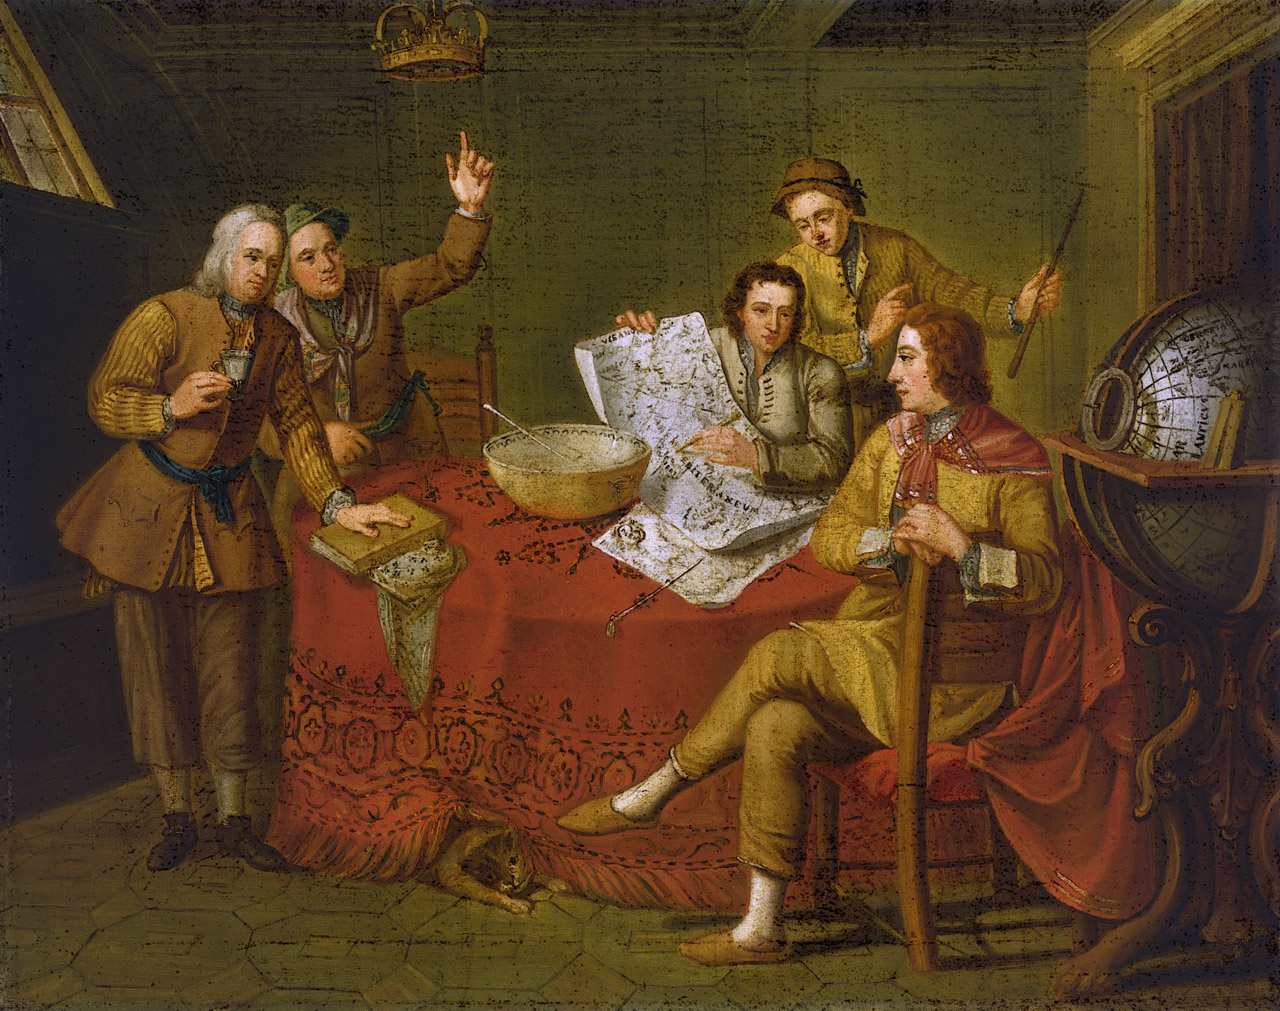 Picture of Gustavus Hamilton, 1710-46, 2nd Viscount Boyne, and Friends in a Ship's Cabin, in the age of the Grand Tour.